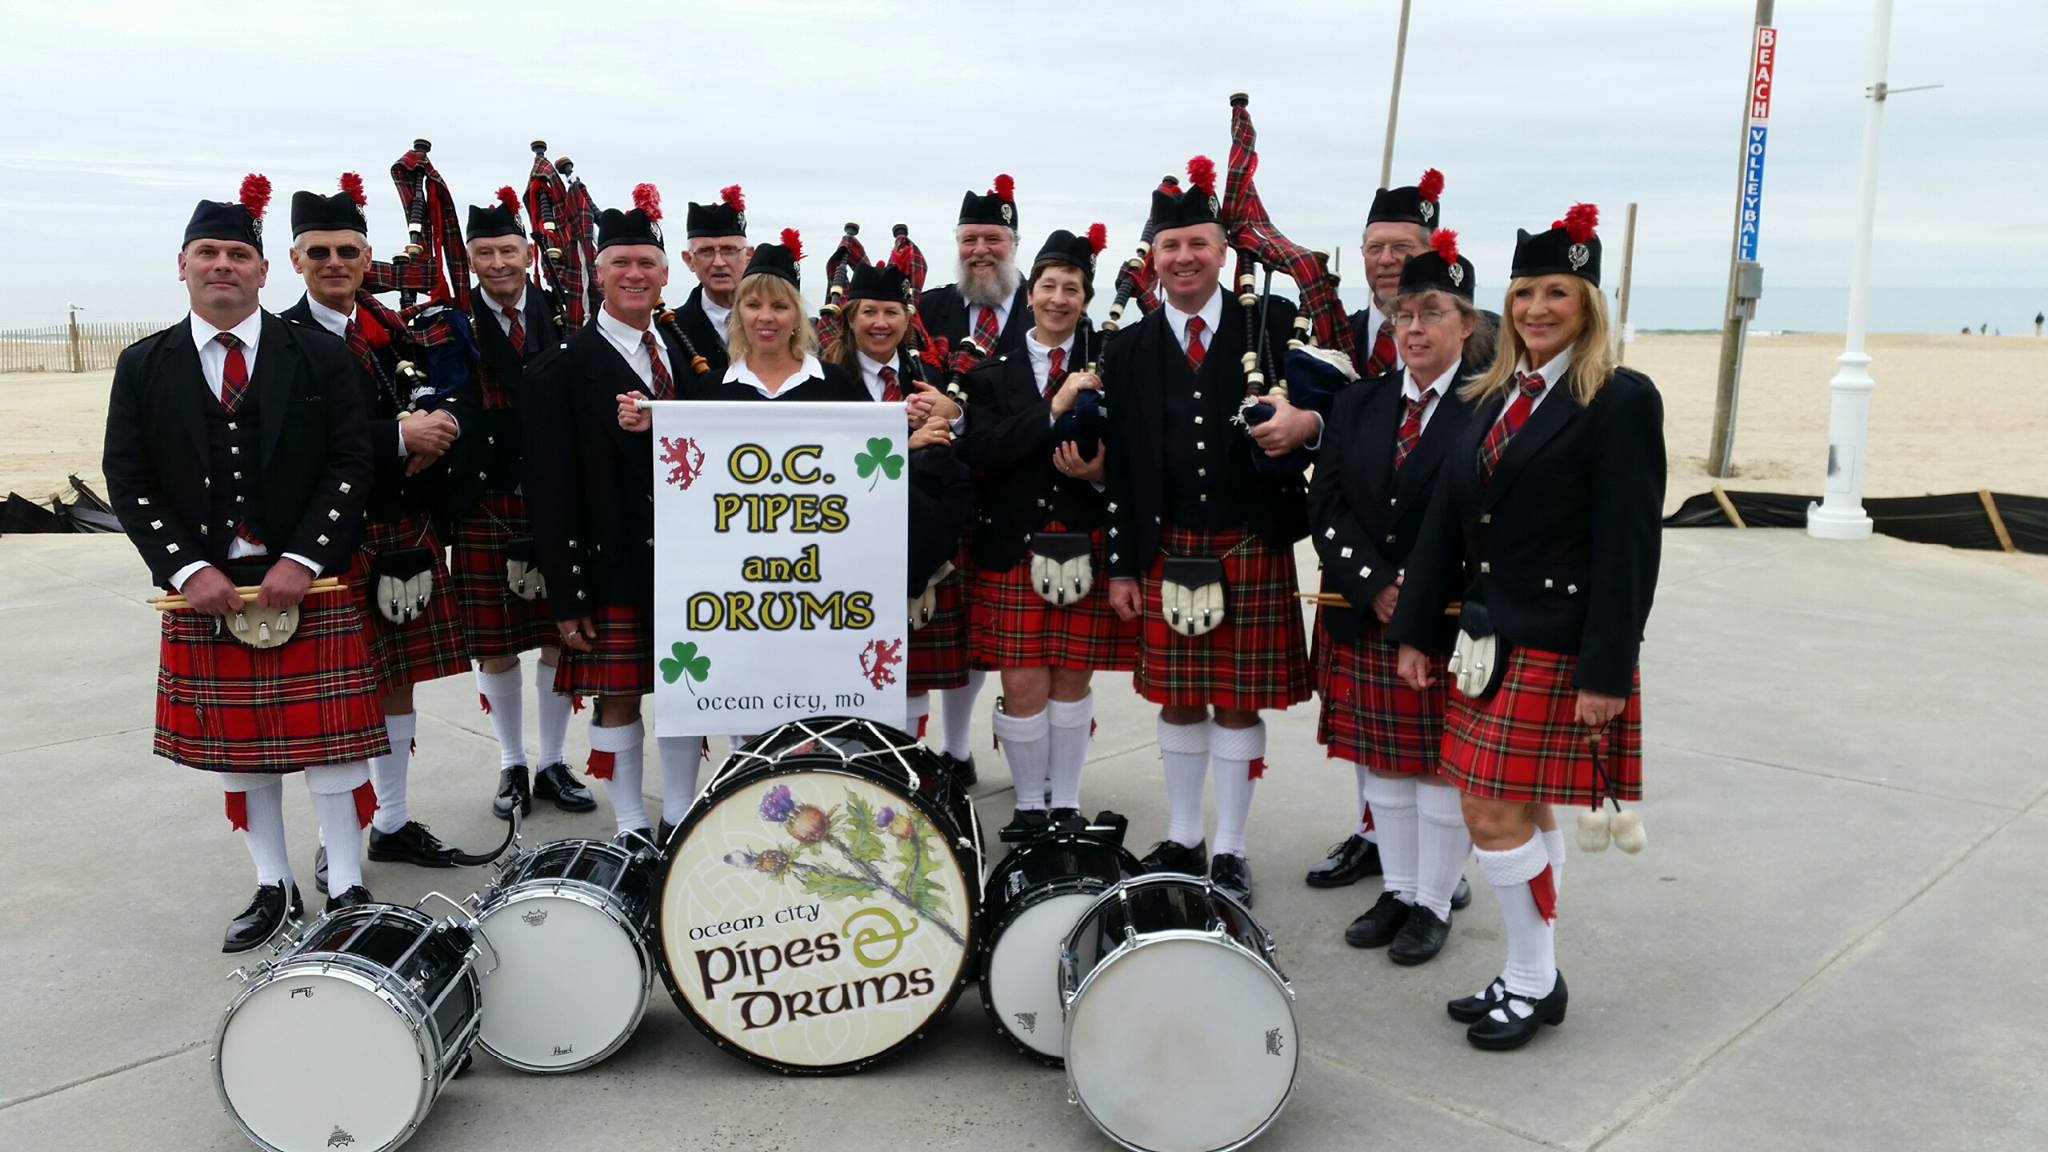 Ocean City Pipes & Drums